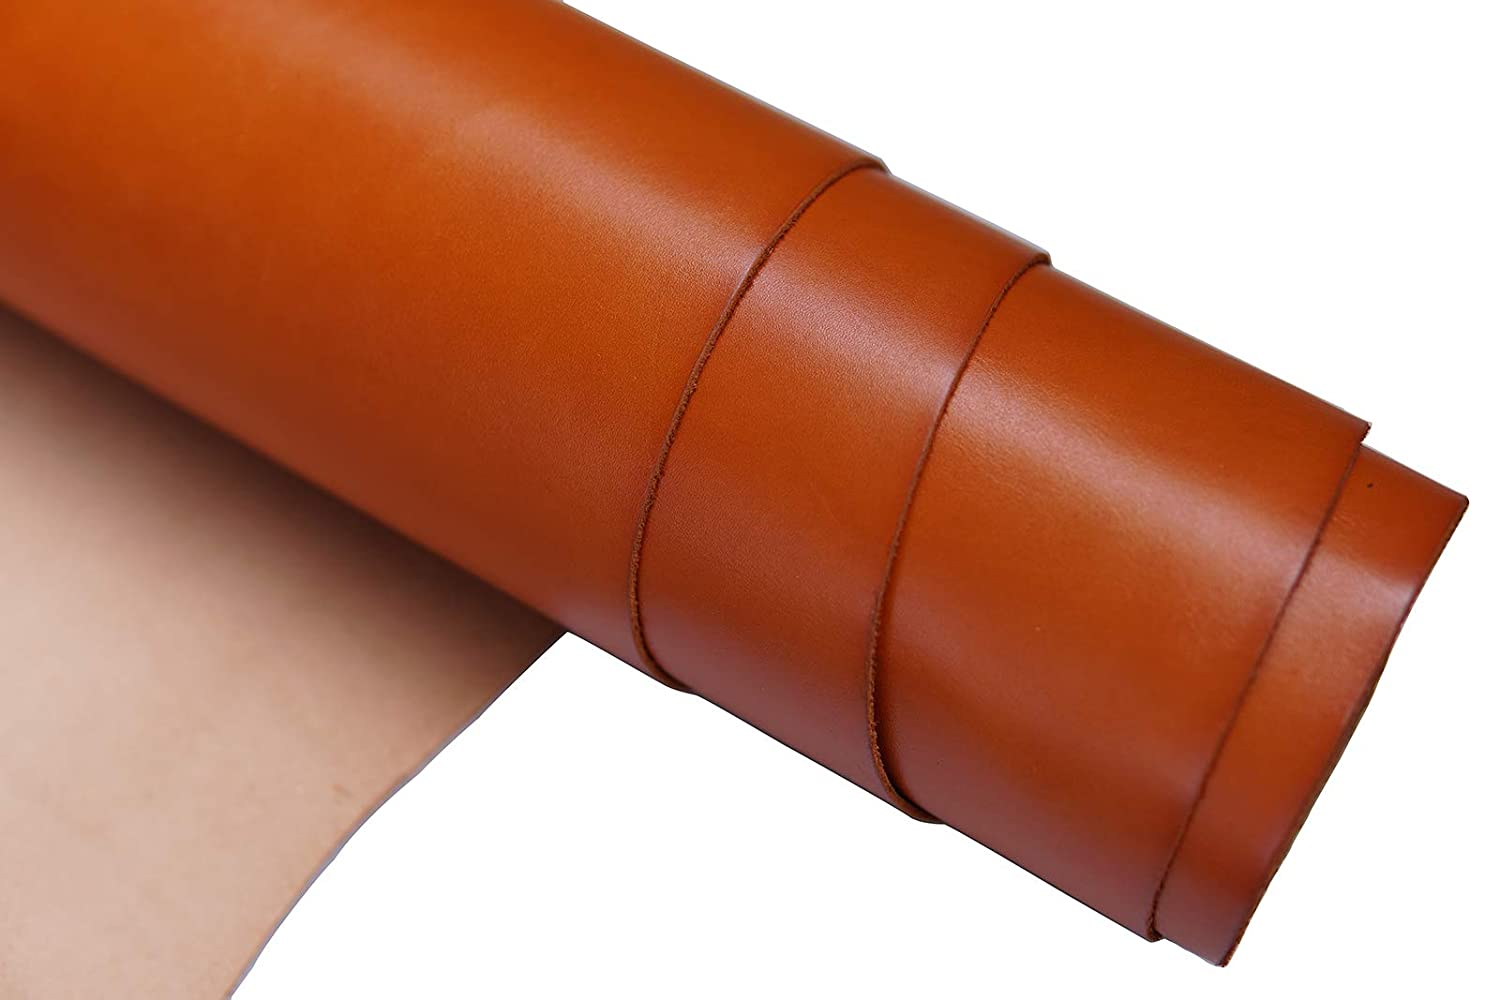 Beige-4.0mm, 6x6 Firm Vegetable Tanned Full Grain Tooling Leather Thick Cowhide Handmade Stiff Leather Material for Craft//Tooling//Caving//Hobby Workshop